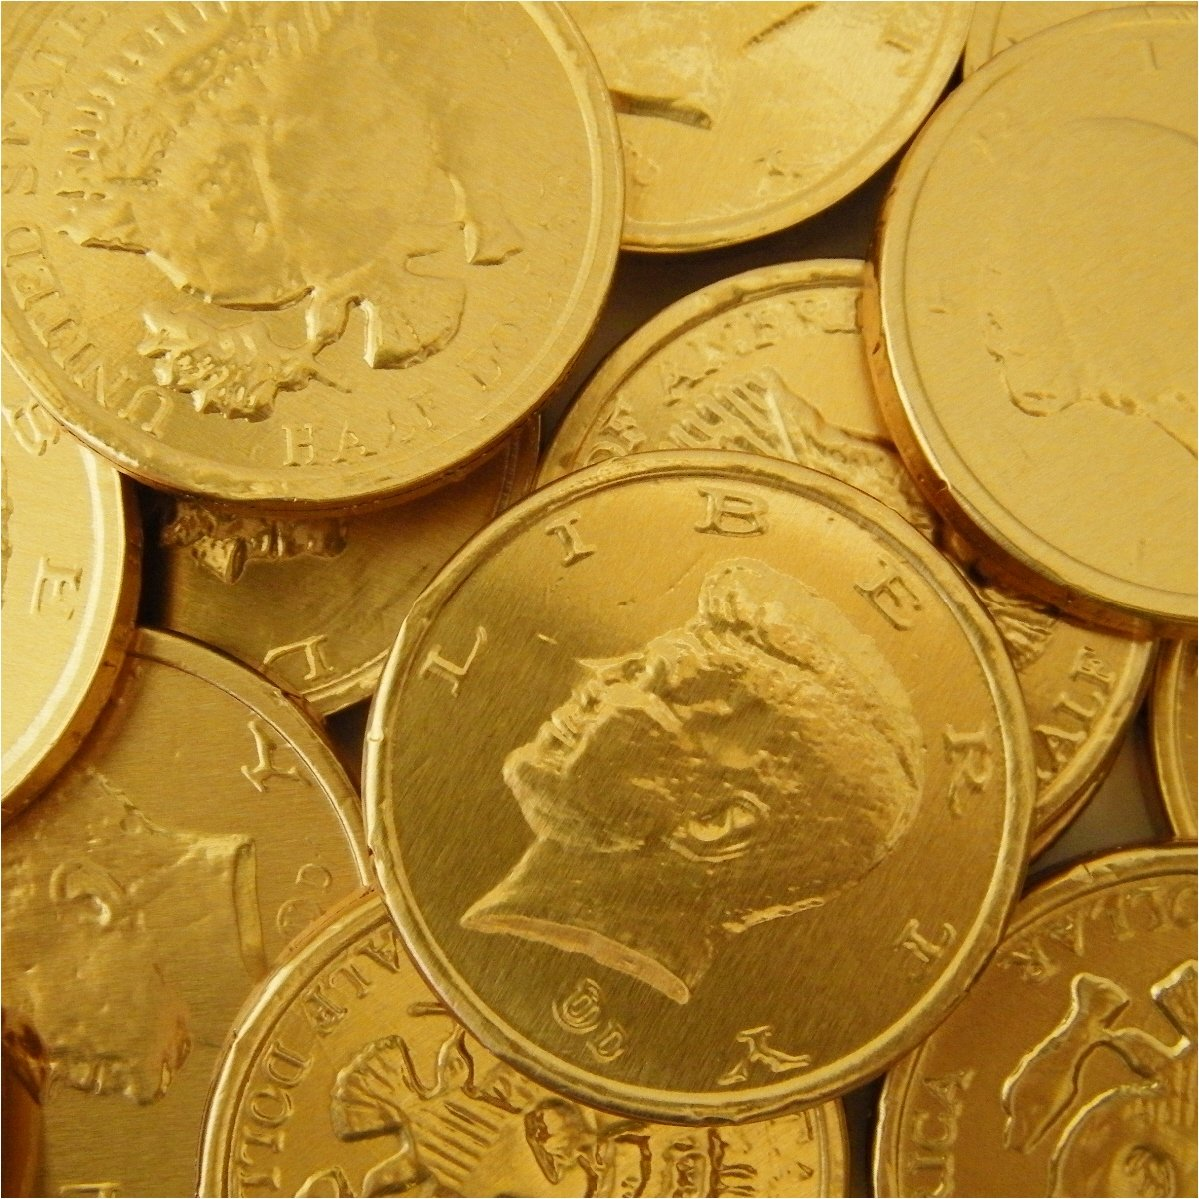 Amazon.com : Chocolate Large Gold Coins 5lb : Candy : Grocery ...